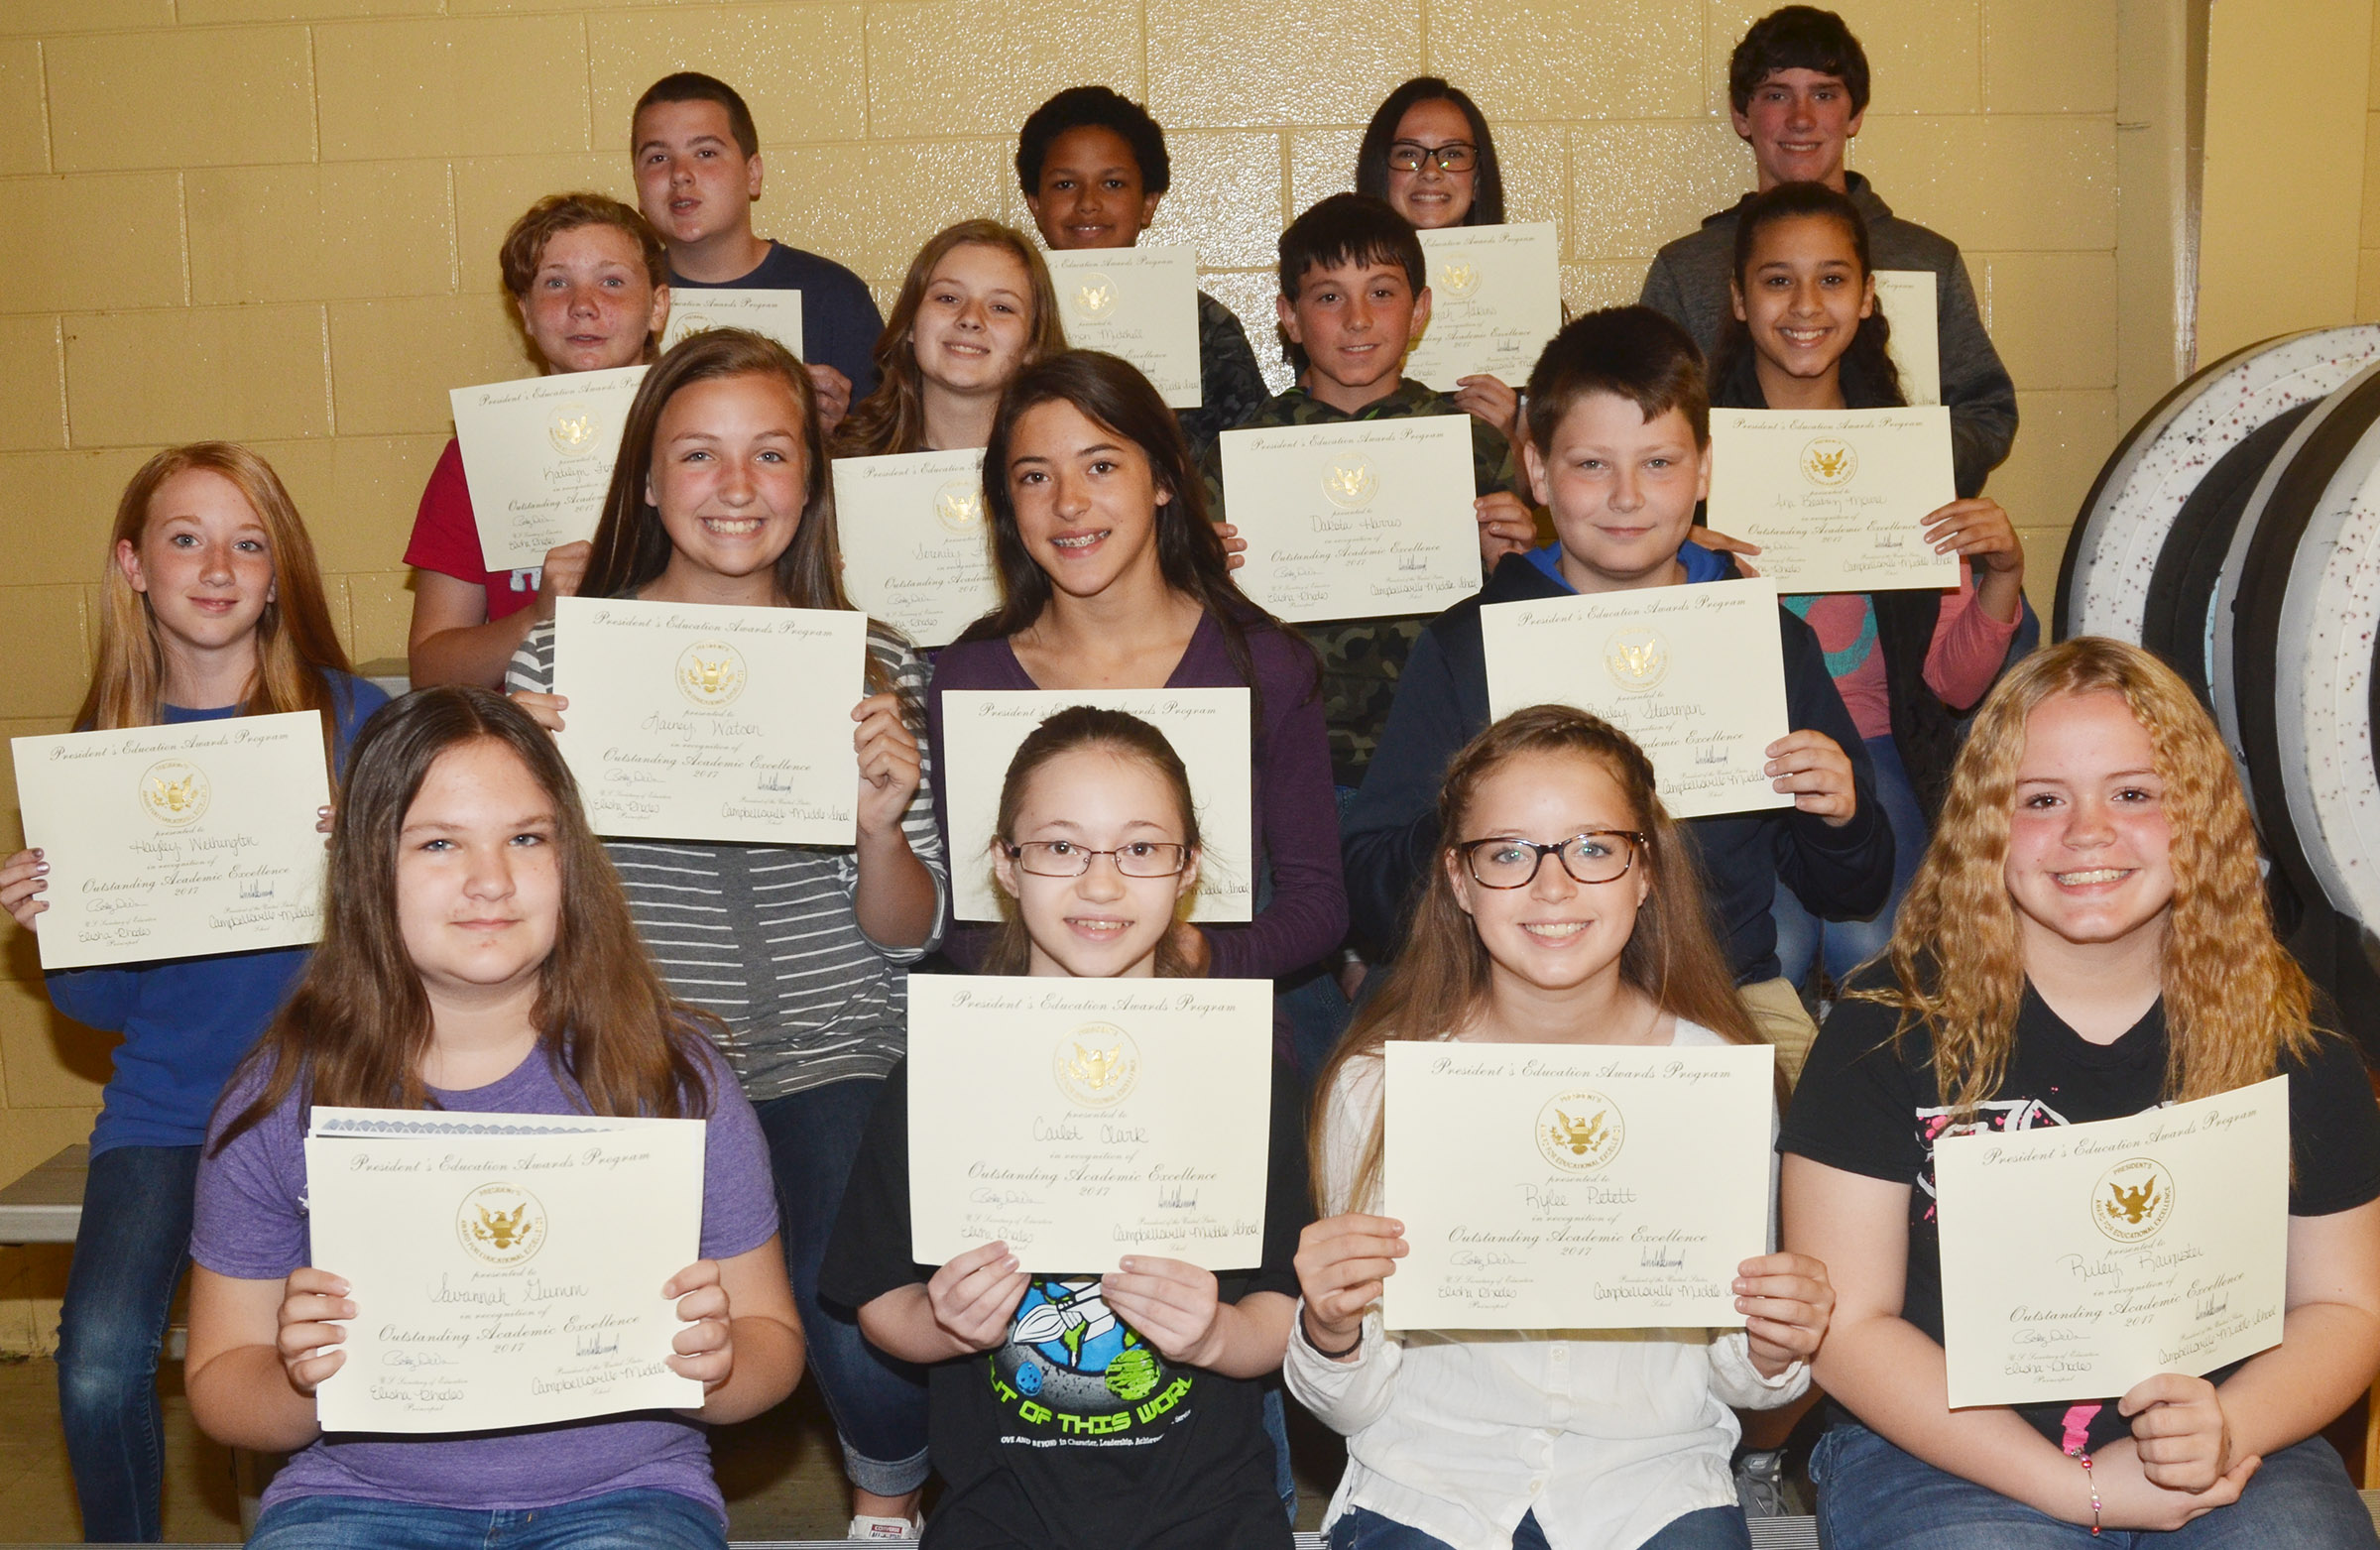 Seventh-grade president's award for educational excellence winners are, from left, front, Savannah Gumm, Cailet Clark, Rylee Petett and Riley Rainwater. Second row, Hayley Wethington, Lainey Watson, Kaylyn Smith and Bailey Stearman. Third row, Katilyn Forrest, Serenity Ford, Dakota Harris and Bia Moura. Back, Jack Sabo, Tezon Mitchell, Sarah Adkins and Peyton Dabney.